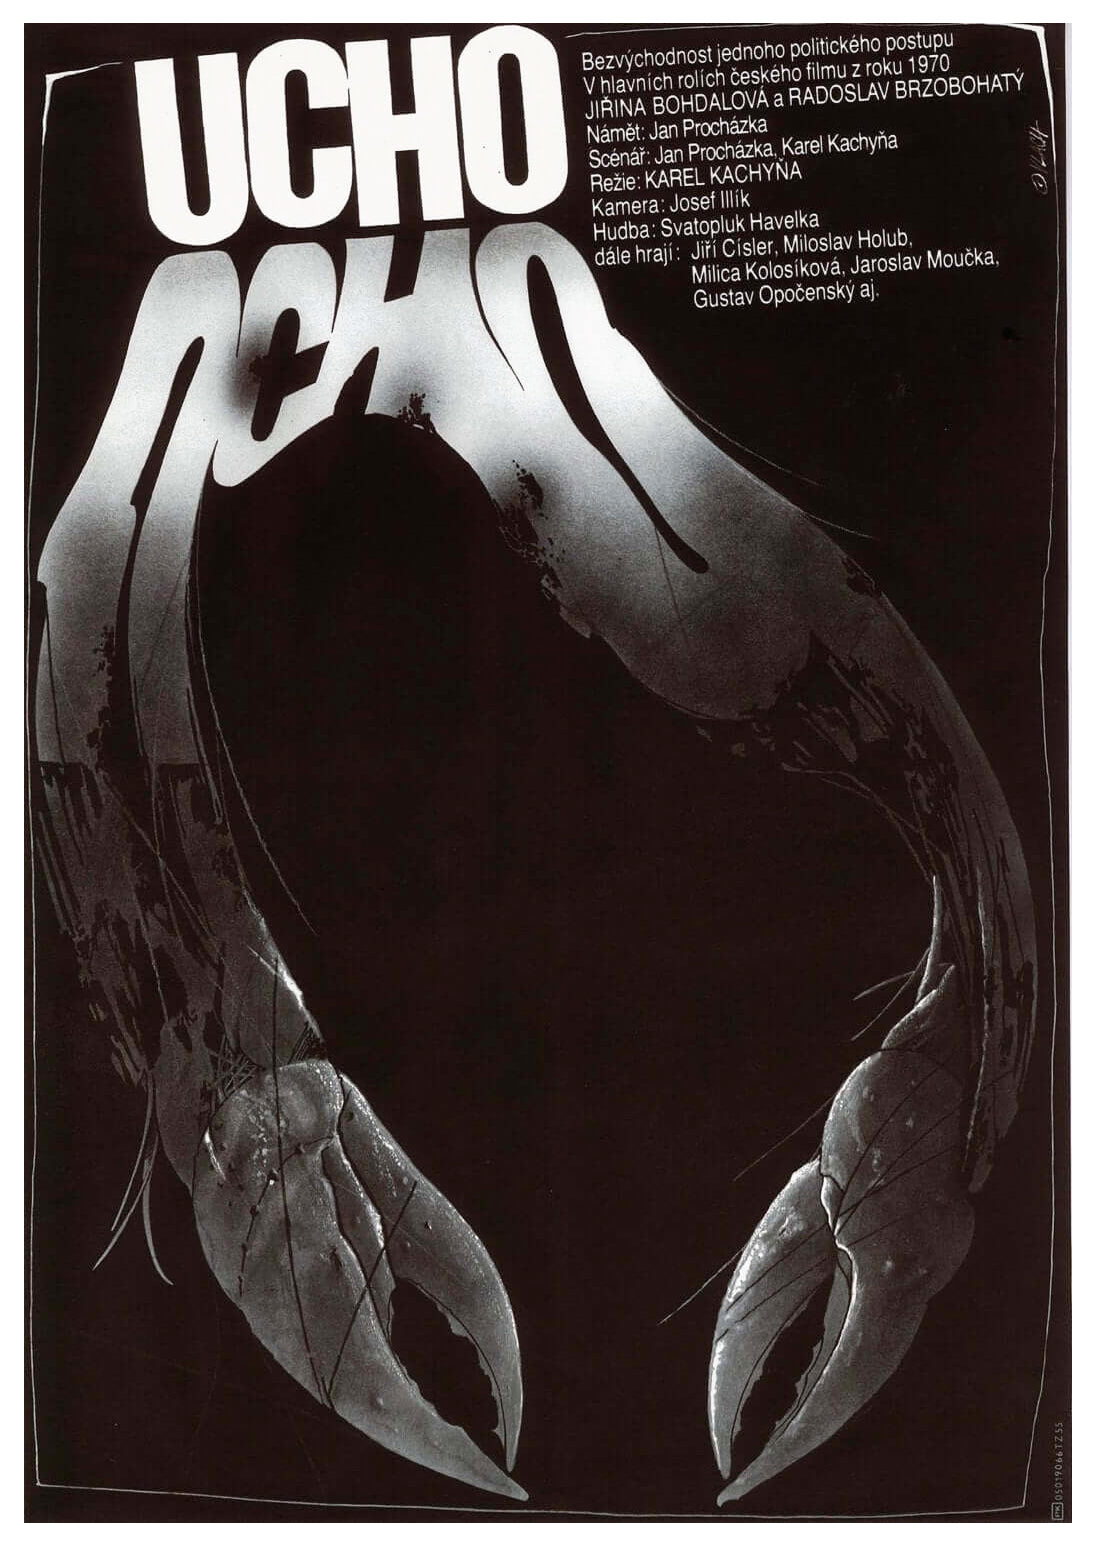 THE EAR (Ucho) Czech Poster